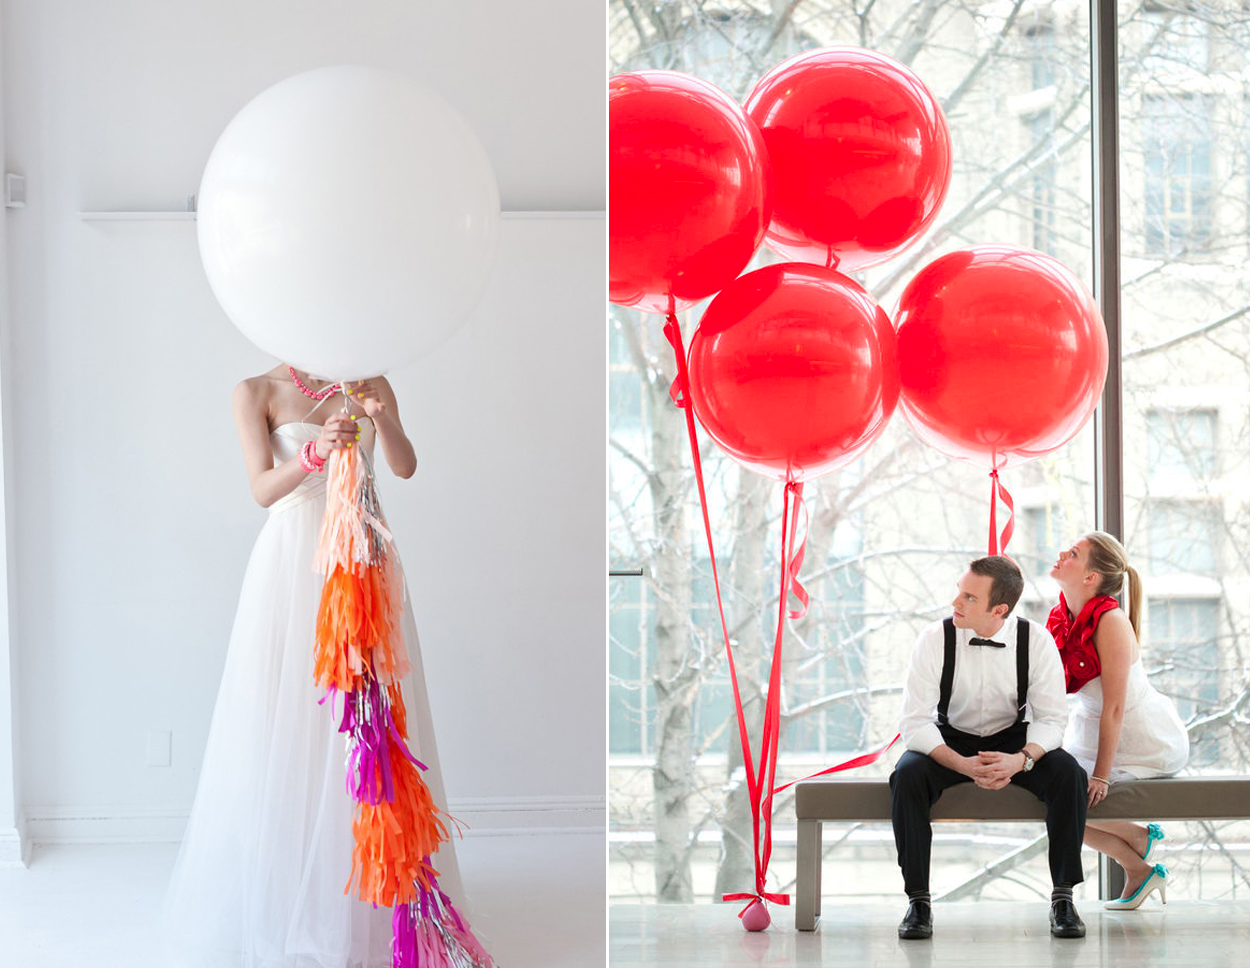 Balloon wedding inspiration diy wedding reception ideas for Balloon decoration for weddings